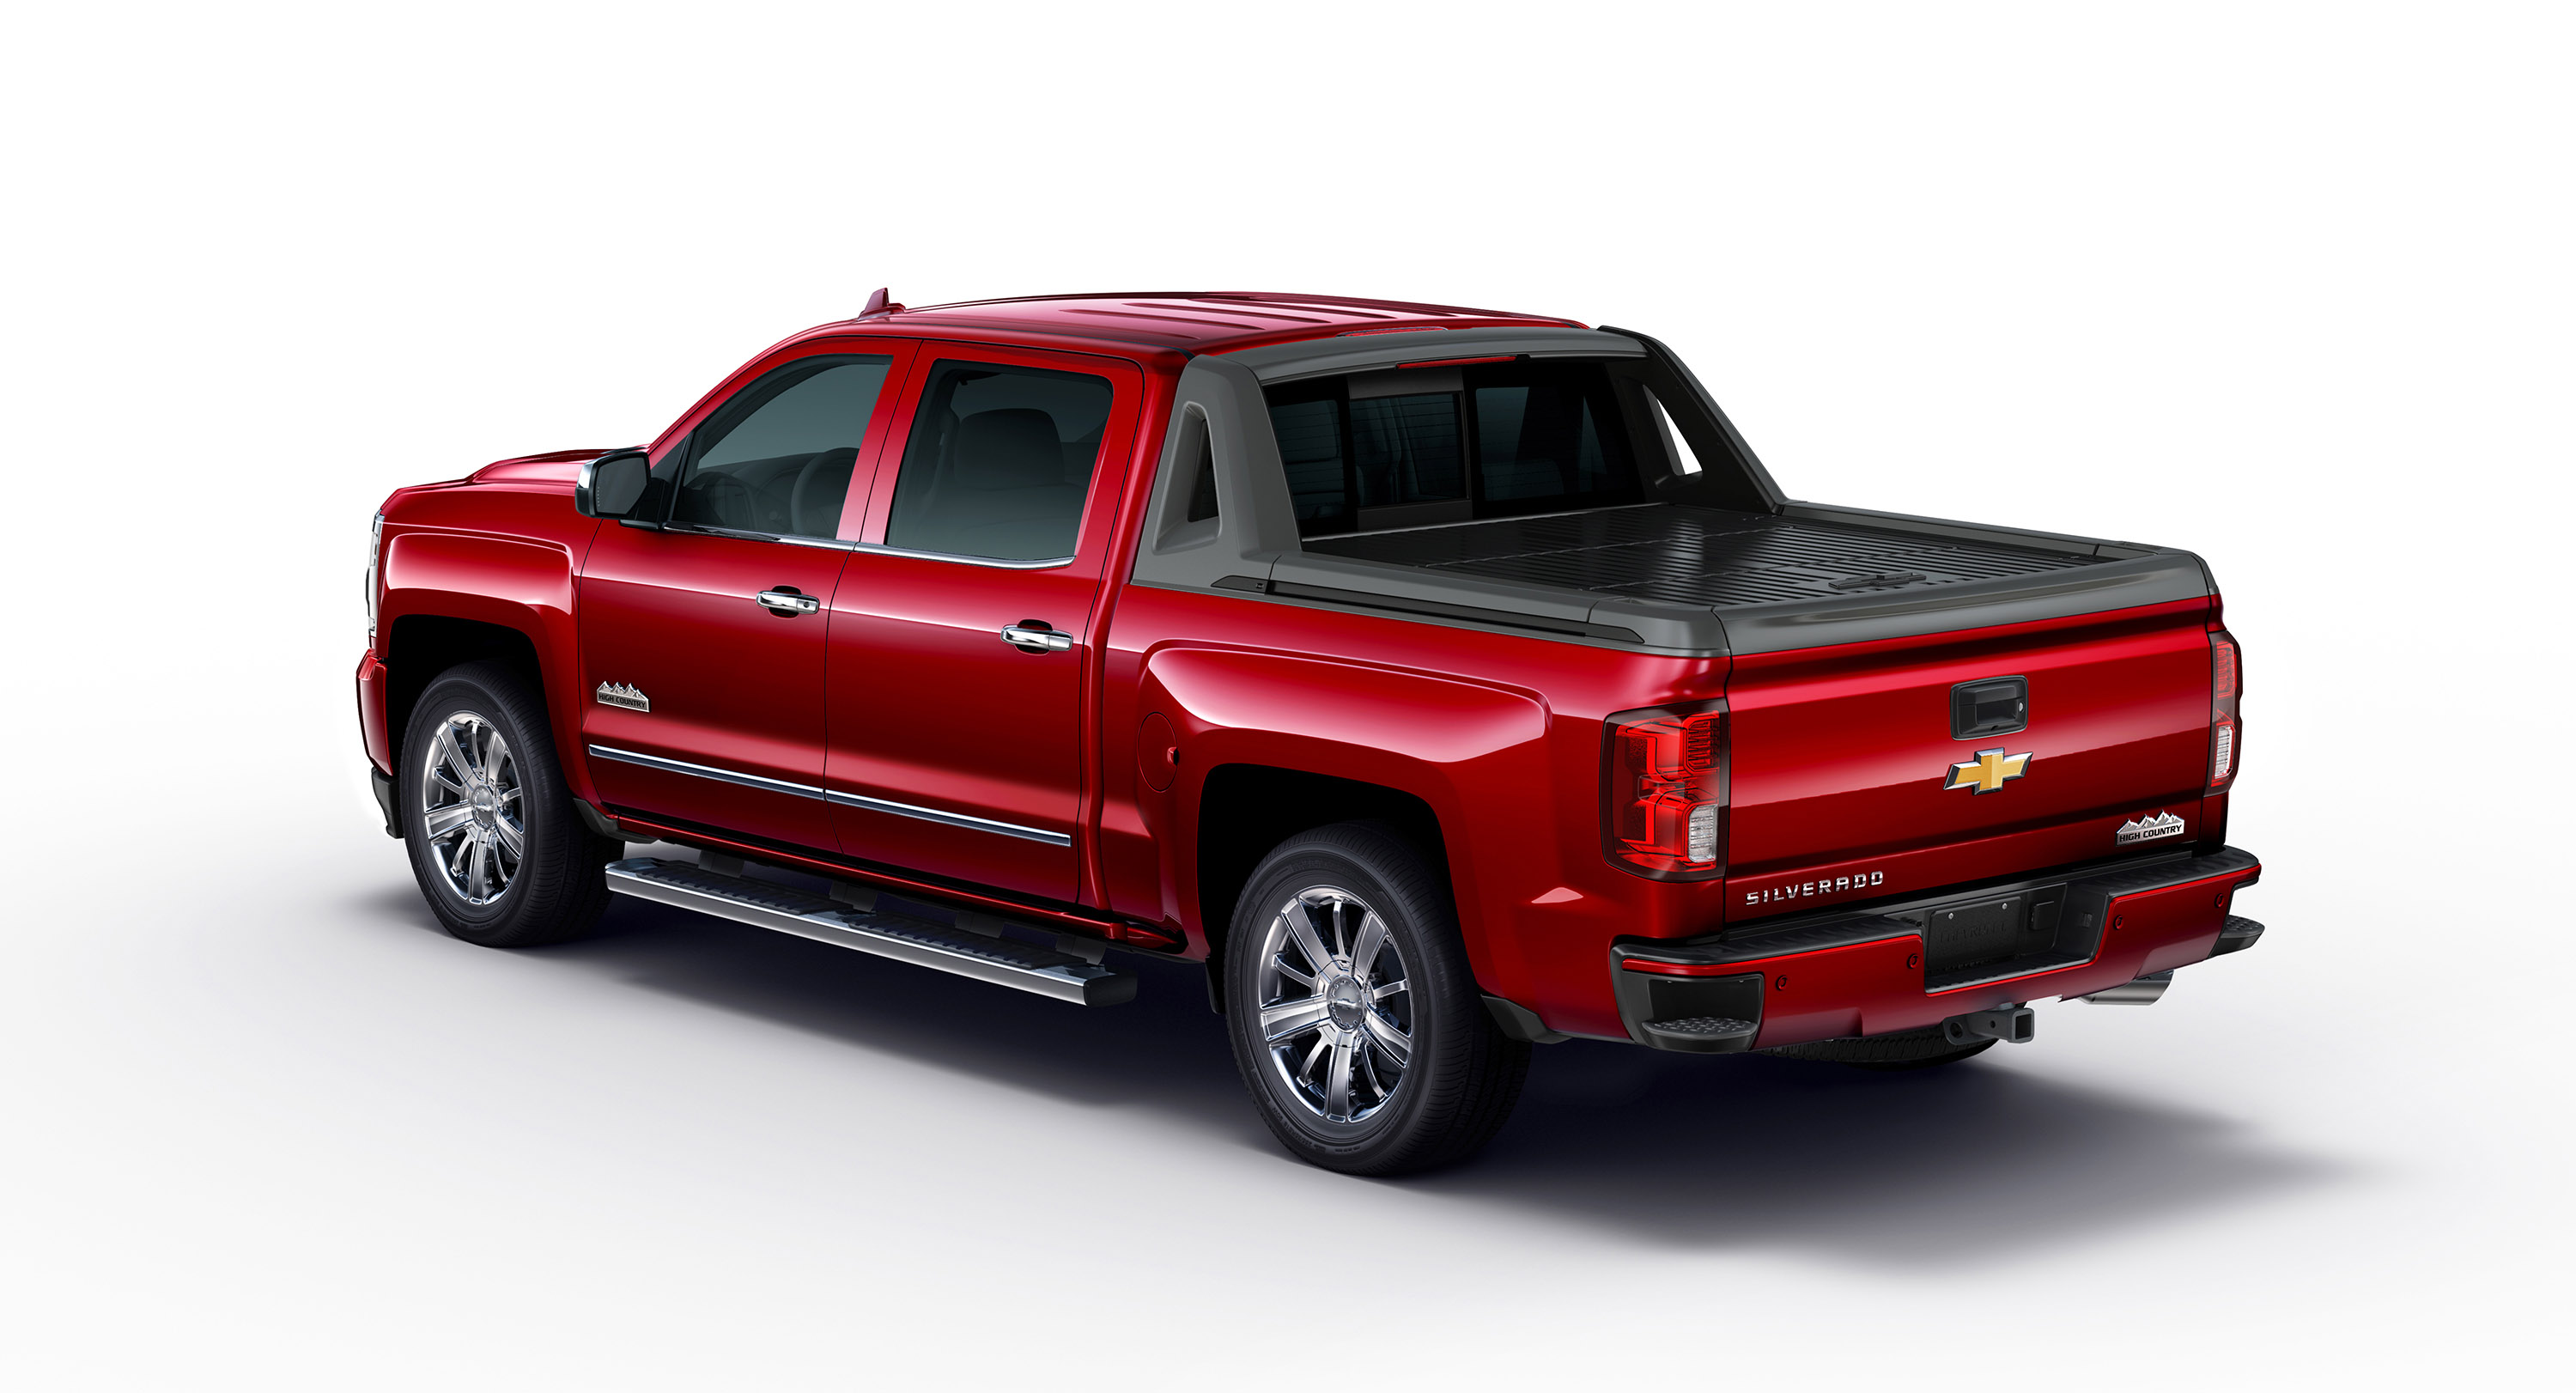 2016 chevrolet silverado high desert package picture 131251. Black Bedroom Furniture Sets. Home Design Ideas